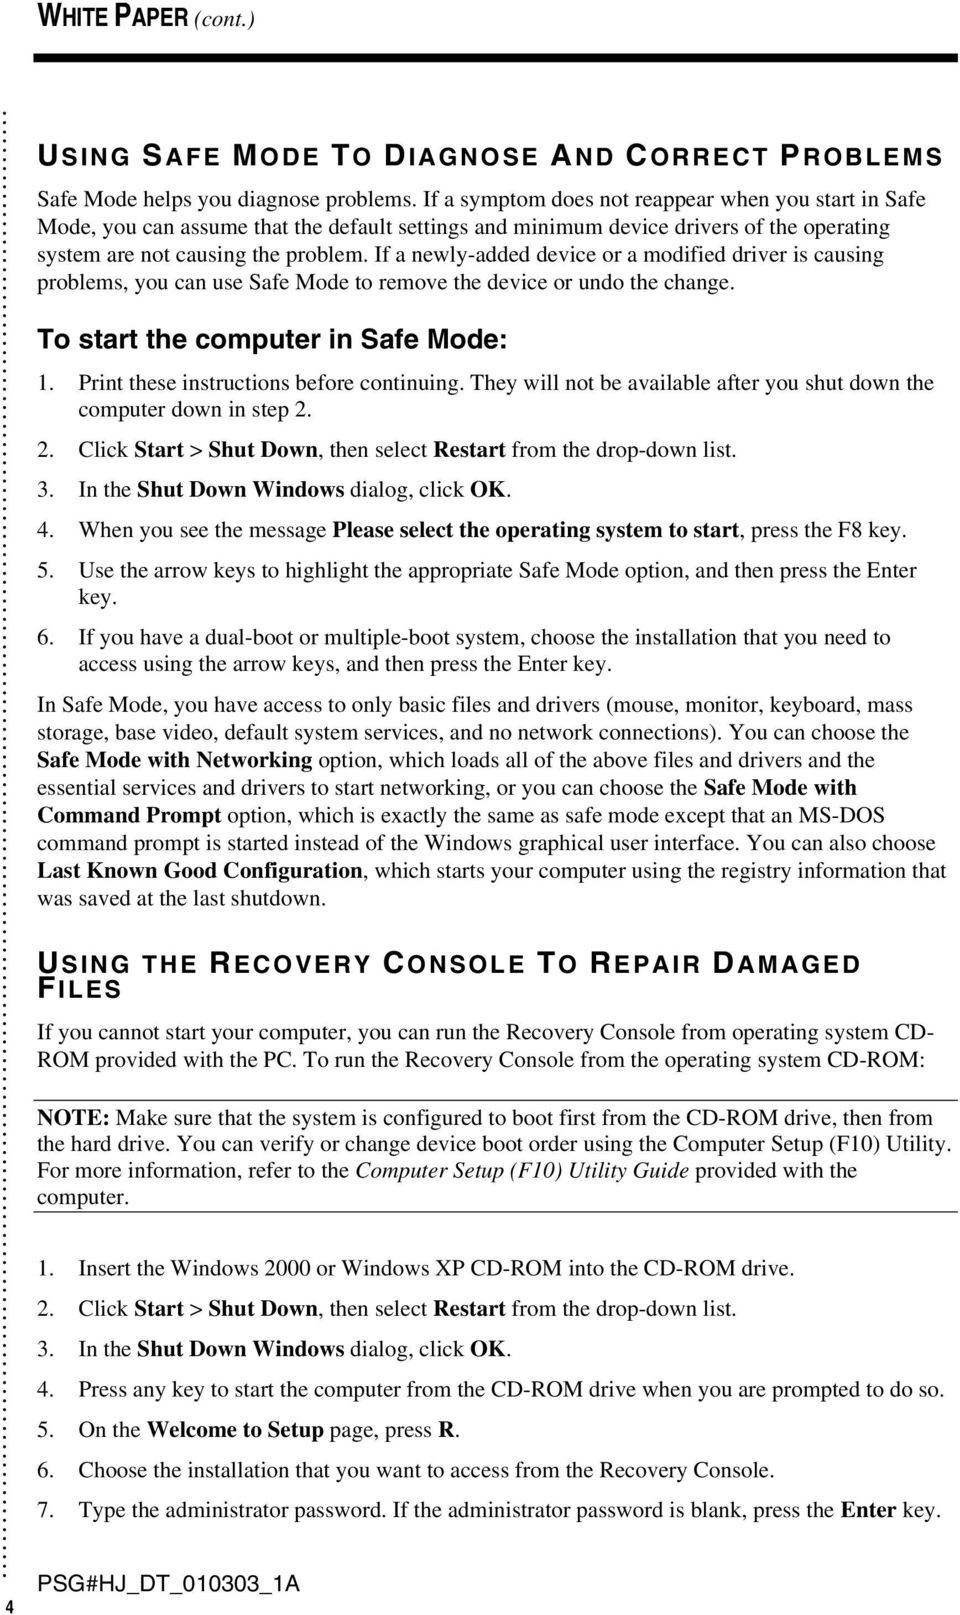 undo the change To start the computer in Safe Mode: 1 Print these instructions before continuing They will not be available after you shut down the computer down in step 2 2 Click Start > Shut Down,